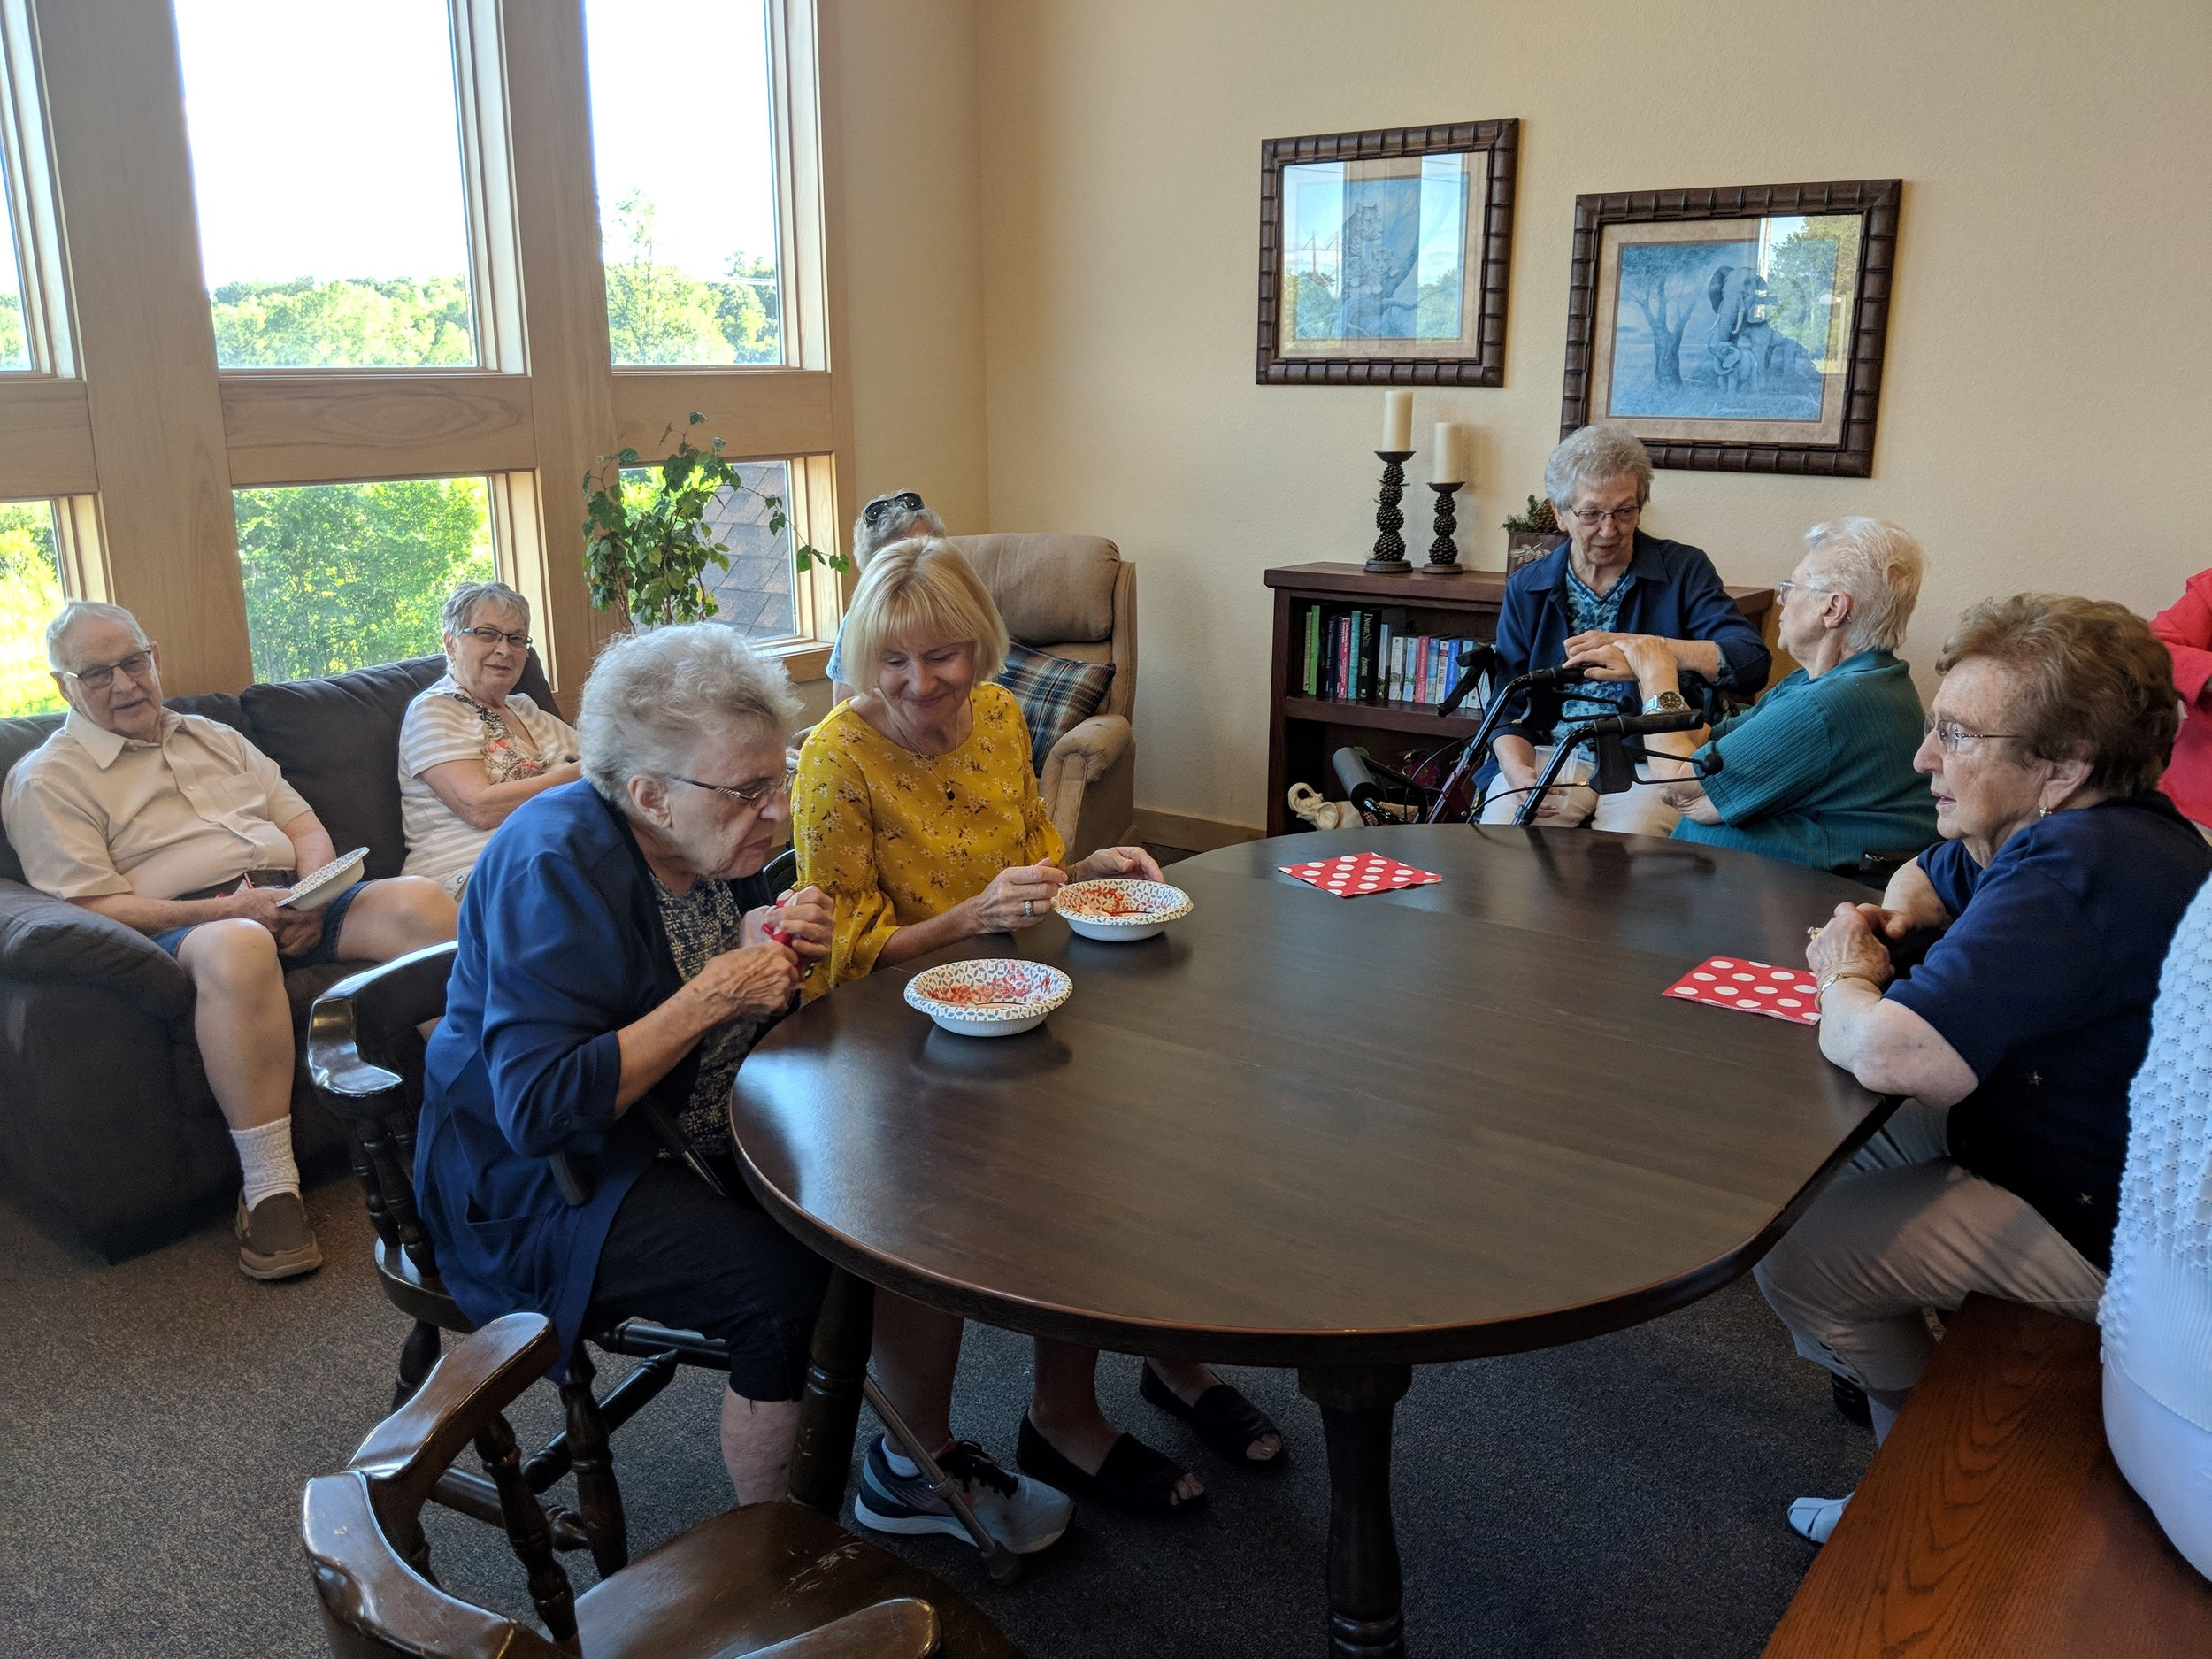 Strawberry Shortcake Family Social!! Free will donations were given towards the Alzheimer's Association. Thank you to everyone who came out and enjoyed this delicious treat for a great cause ❤️!.jpg